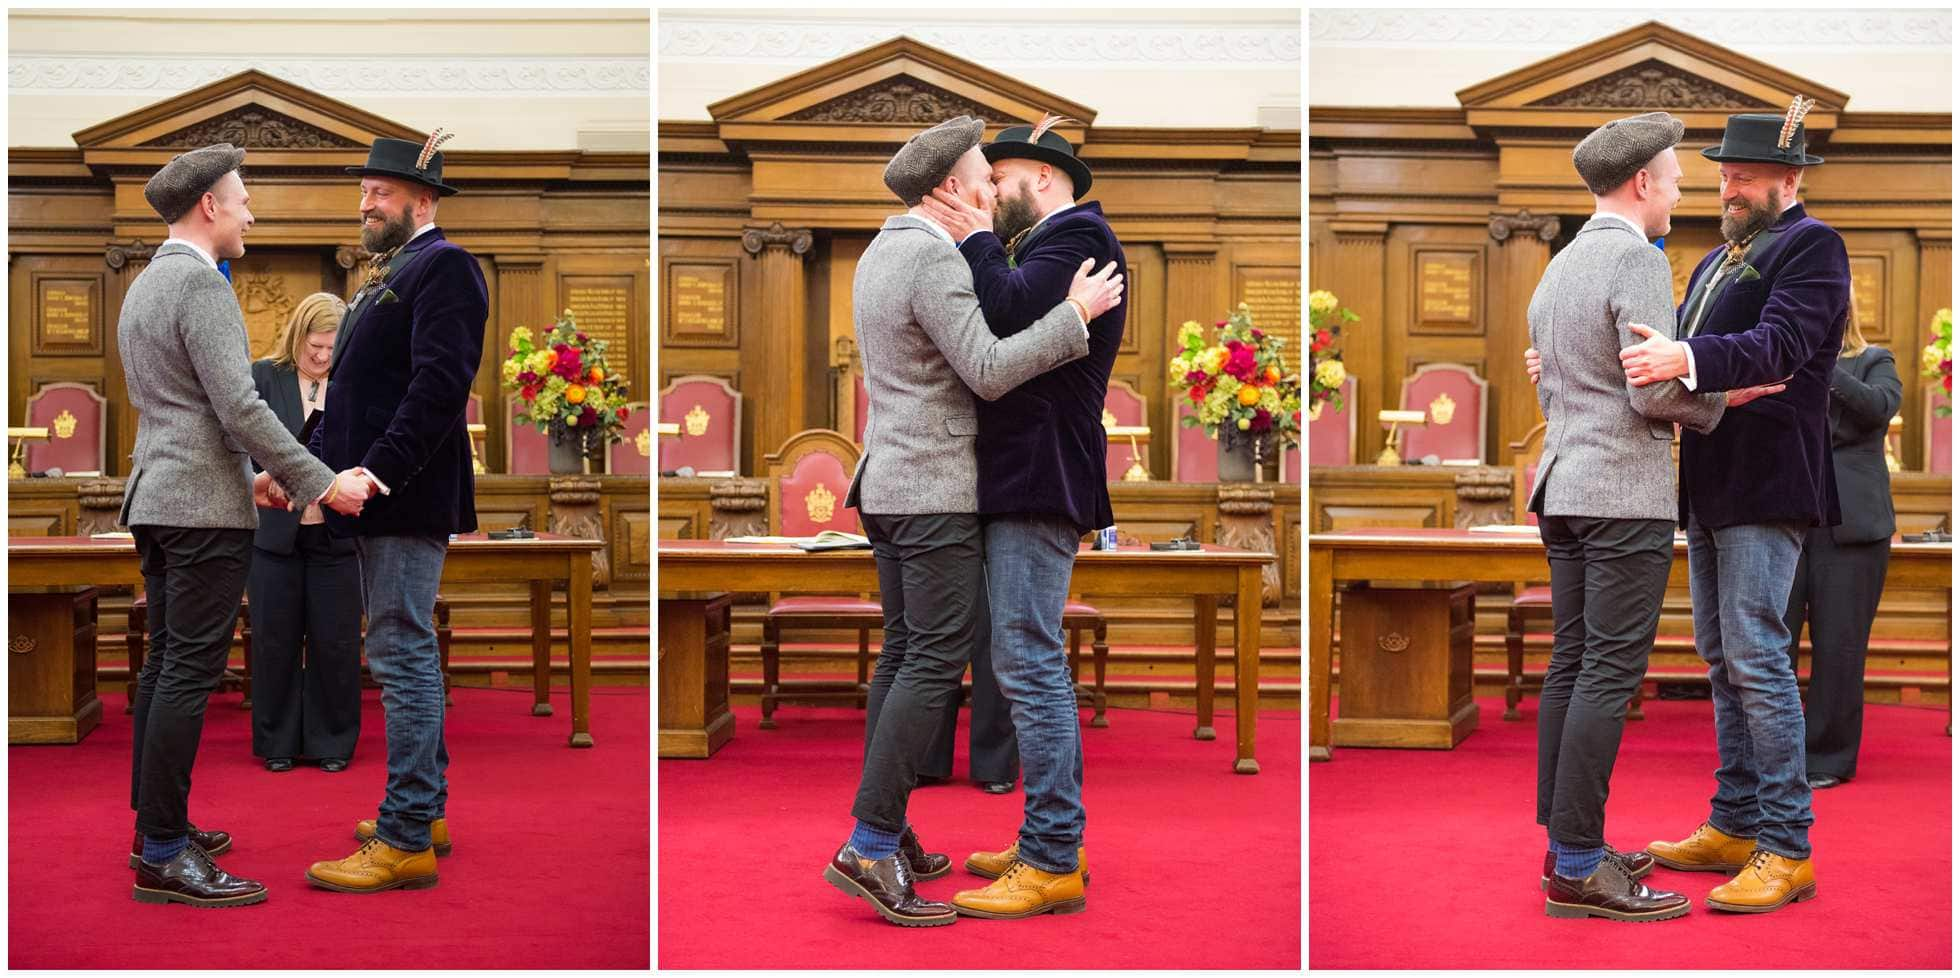 The kiss gay wedding photography islington town hall